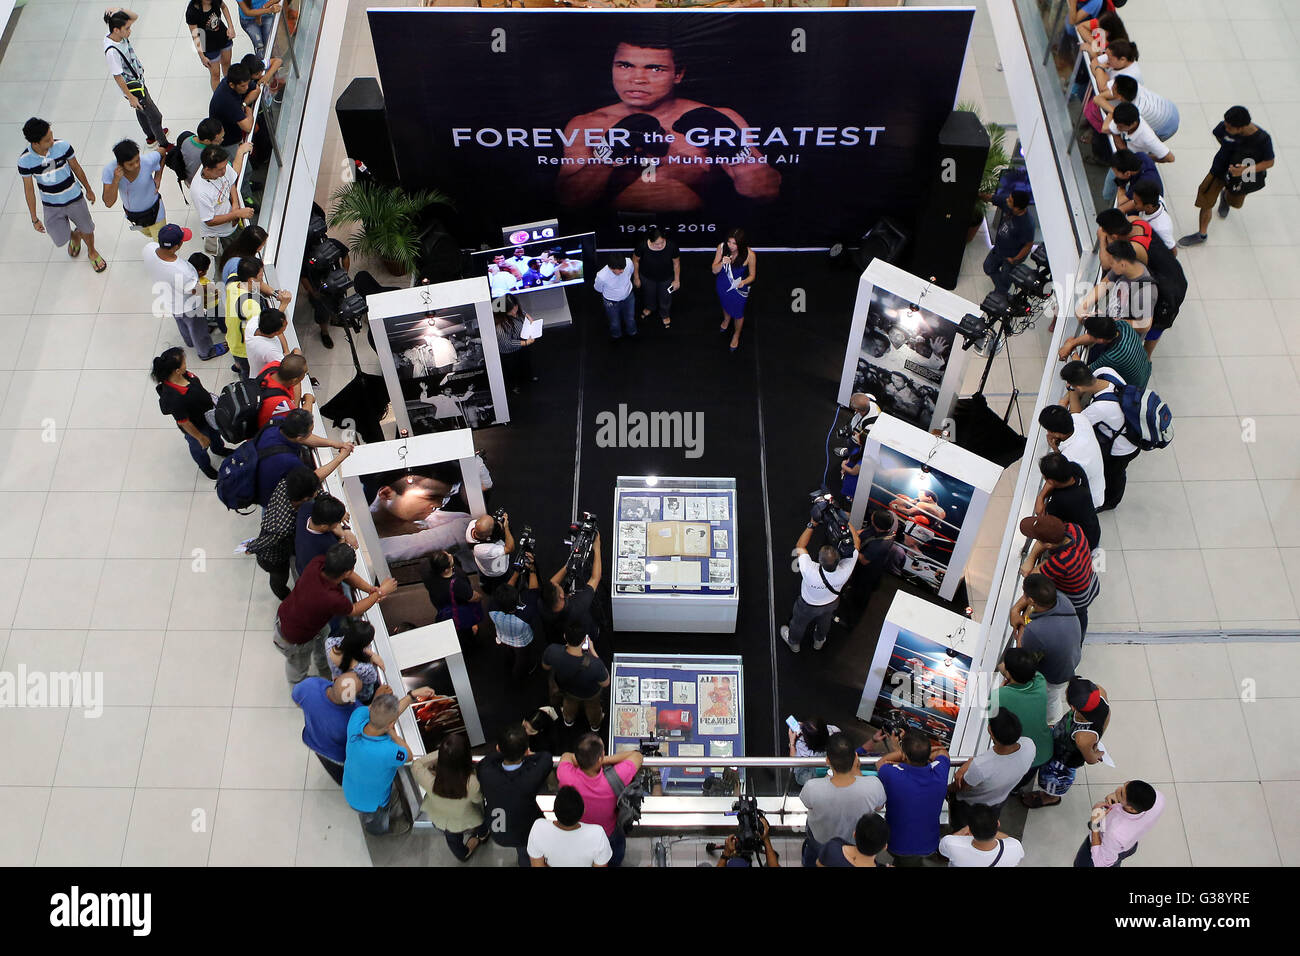 Quezon City, Arizona, USA. 3rd June, 2016. People attend the opening of an exhibit commemorating Muhammad Ali inside Stock Photo